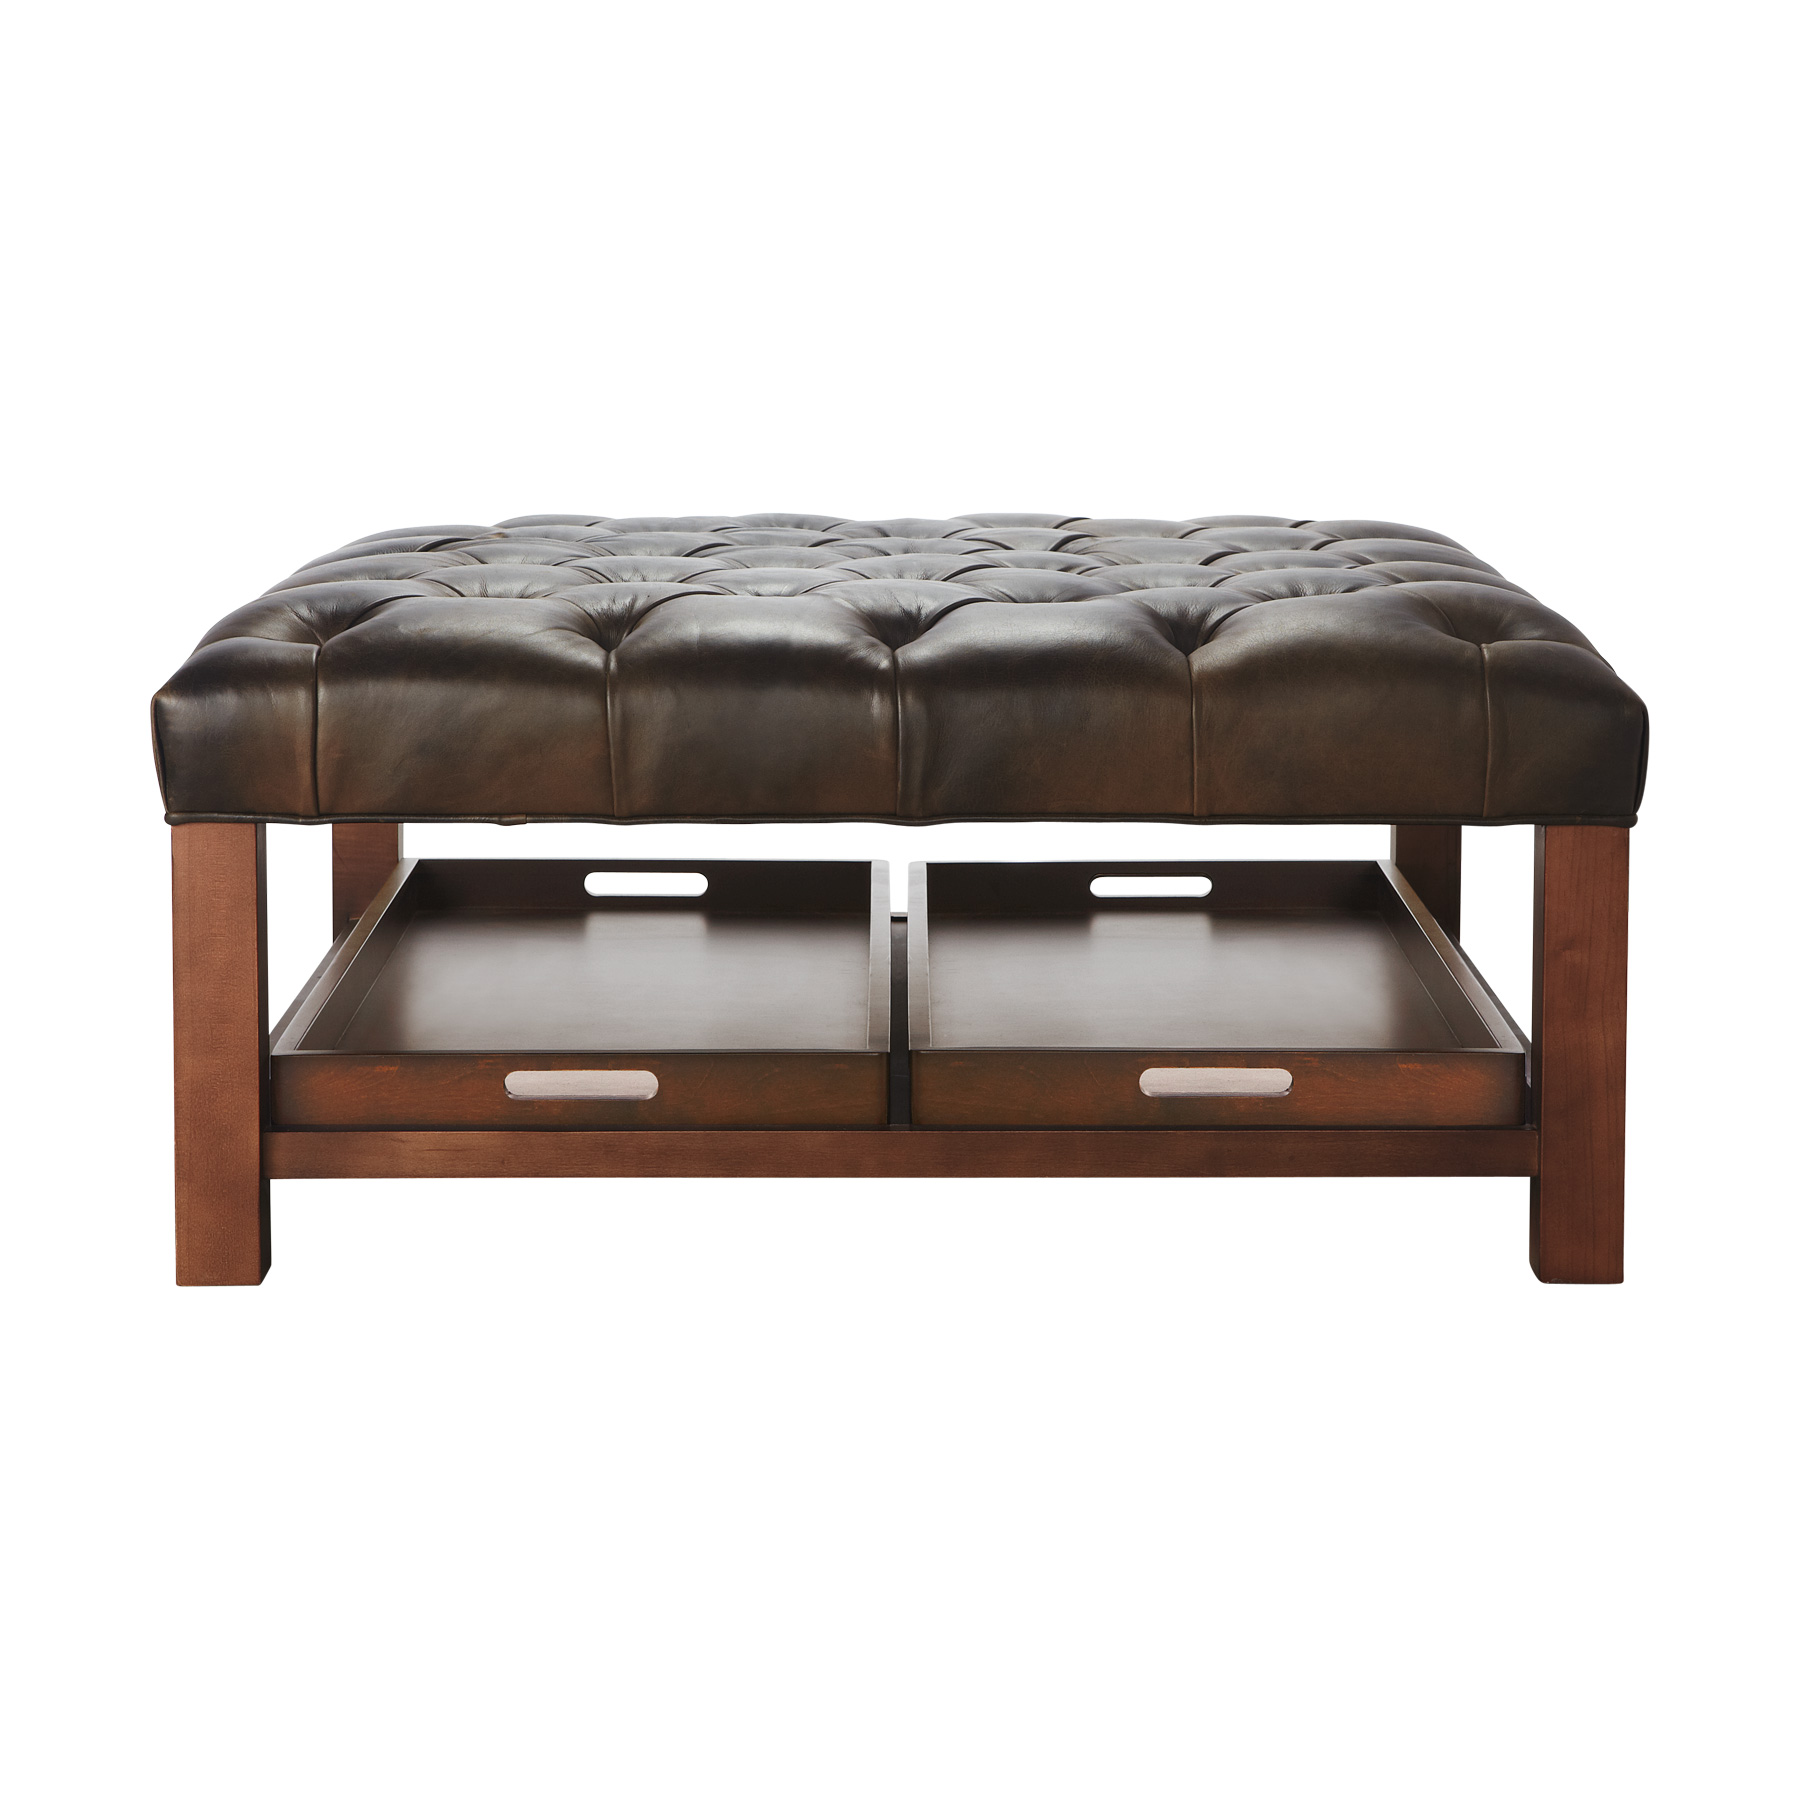 brown wooden large ottoman tray on brown ottoman for inspiring home furniture ideas